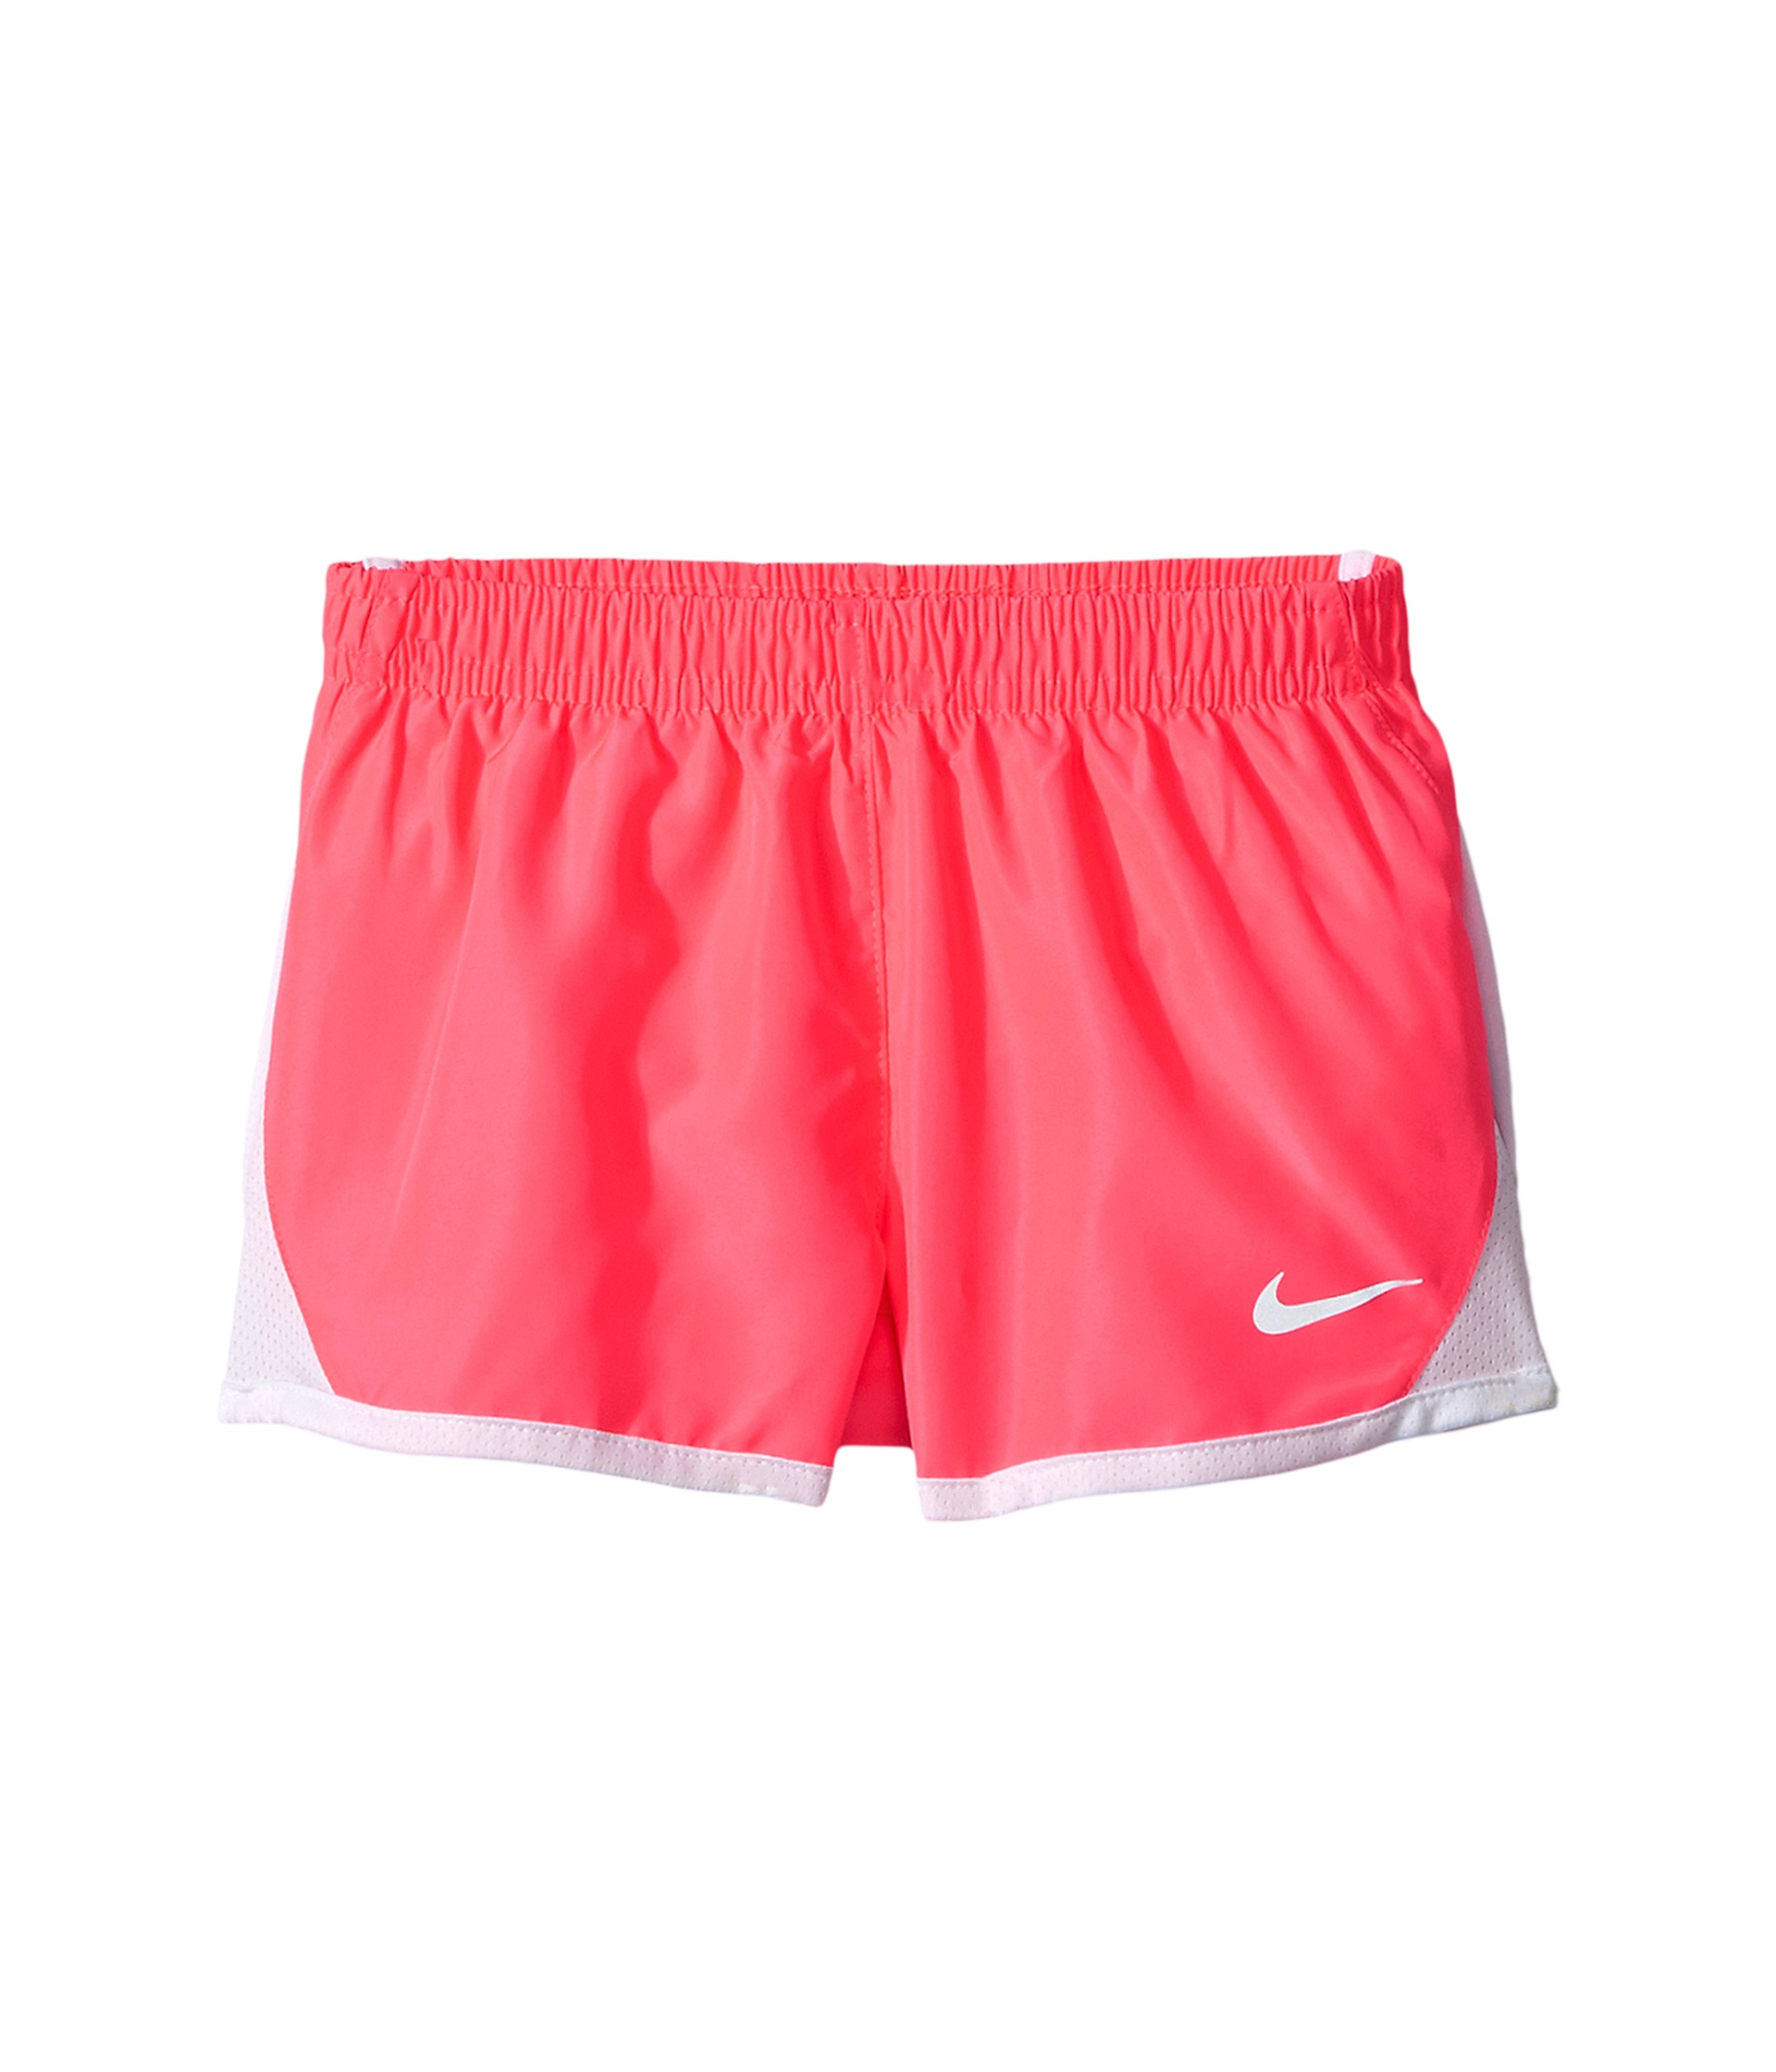 Find Infant & Toddler Girls' Running Shorts at dvlnpxiuf.ga Enjoy free shipping and returns with NikePlus.